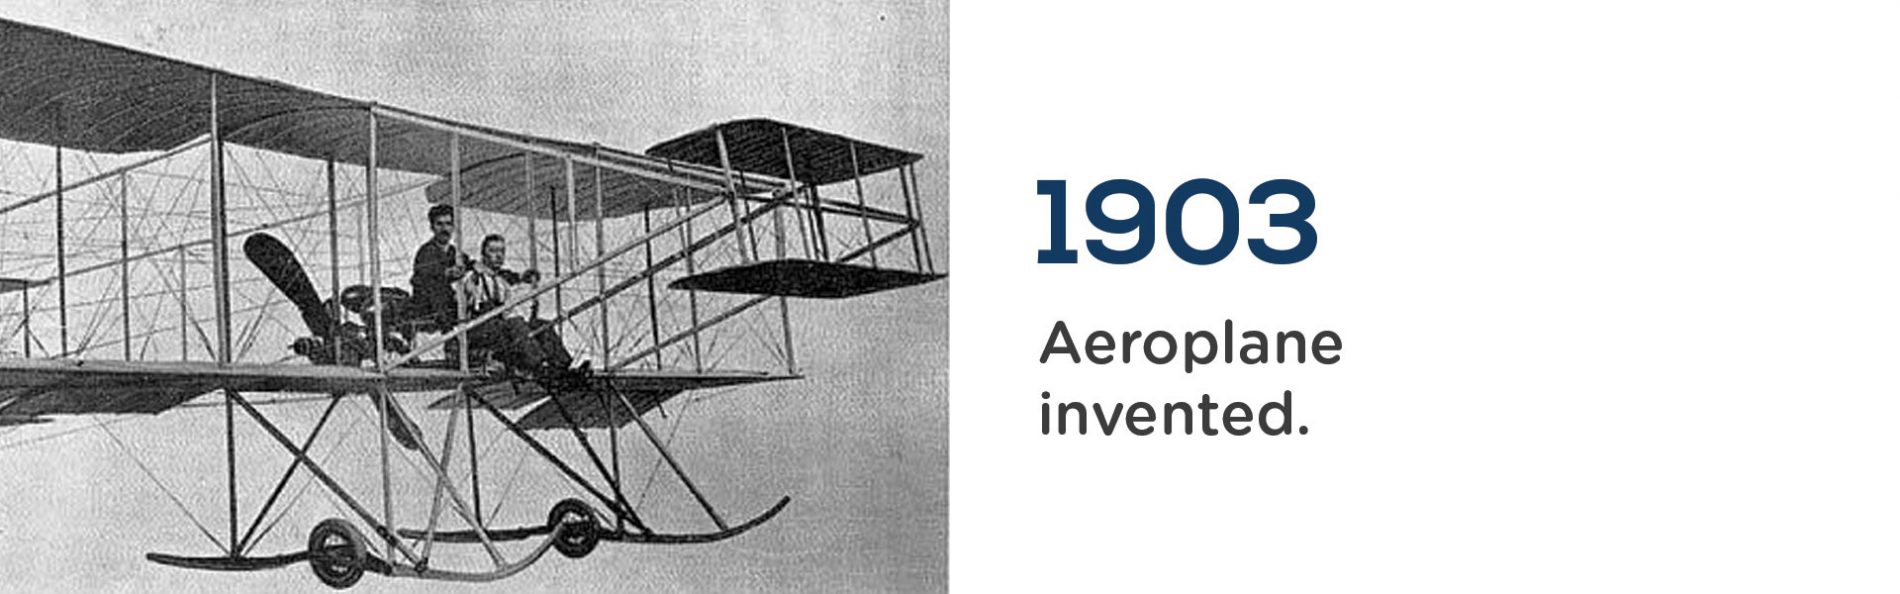 The Aeroplane was invented in 1903 by the Wright Brothers. Wrigley Claydon Solicitors, Trusted for 200 years